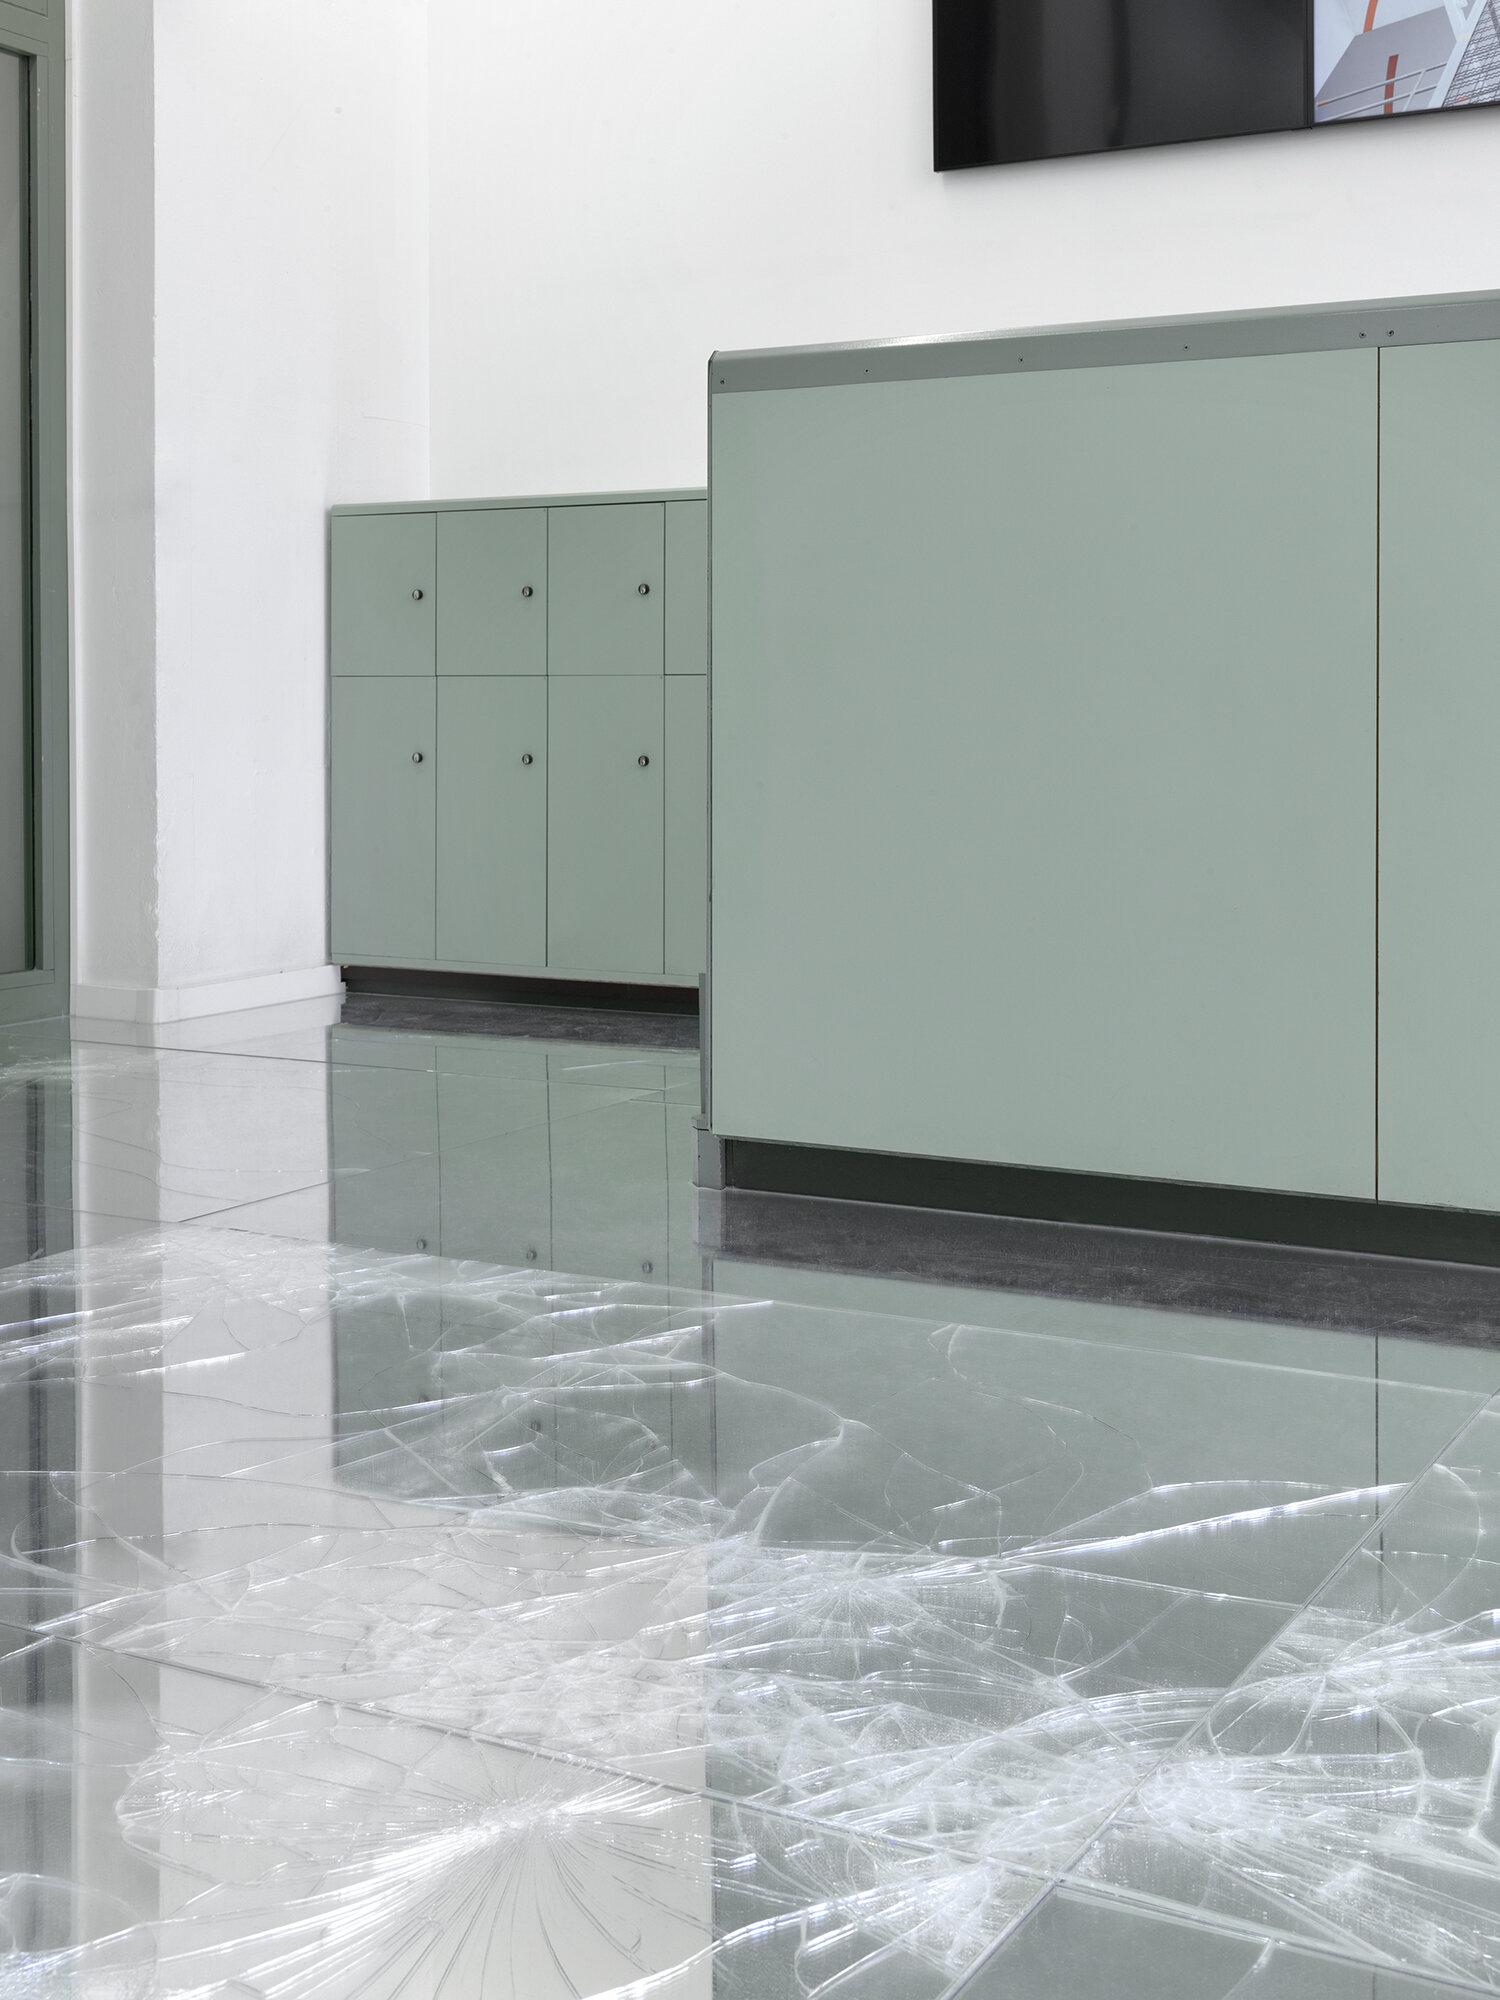 Untitled (Musée d'Art moderne et contemporain, Geneva, Switzerland, 29 mai–8 septembre, 2019)    2019   Laminated mirror and glass, neoprene  Dimensions variable   Mirrored Floor Work, 2009–